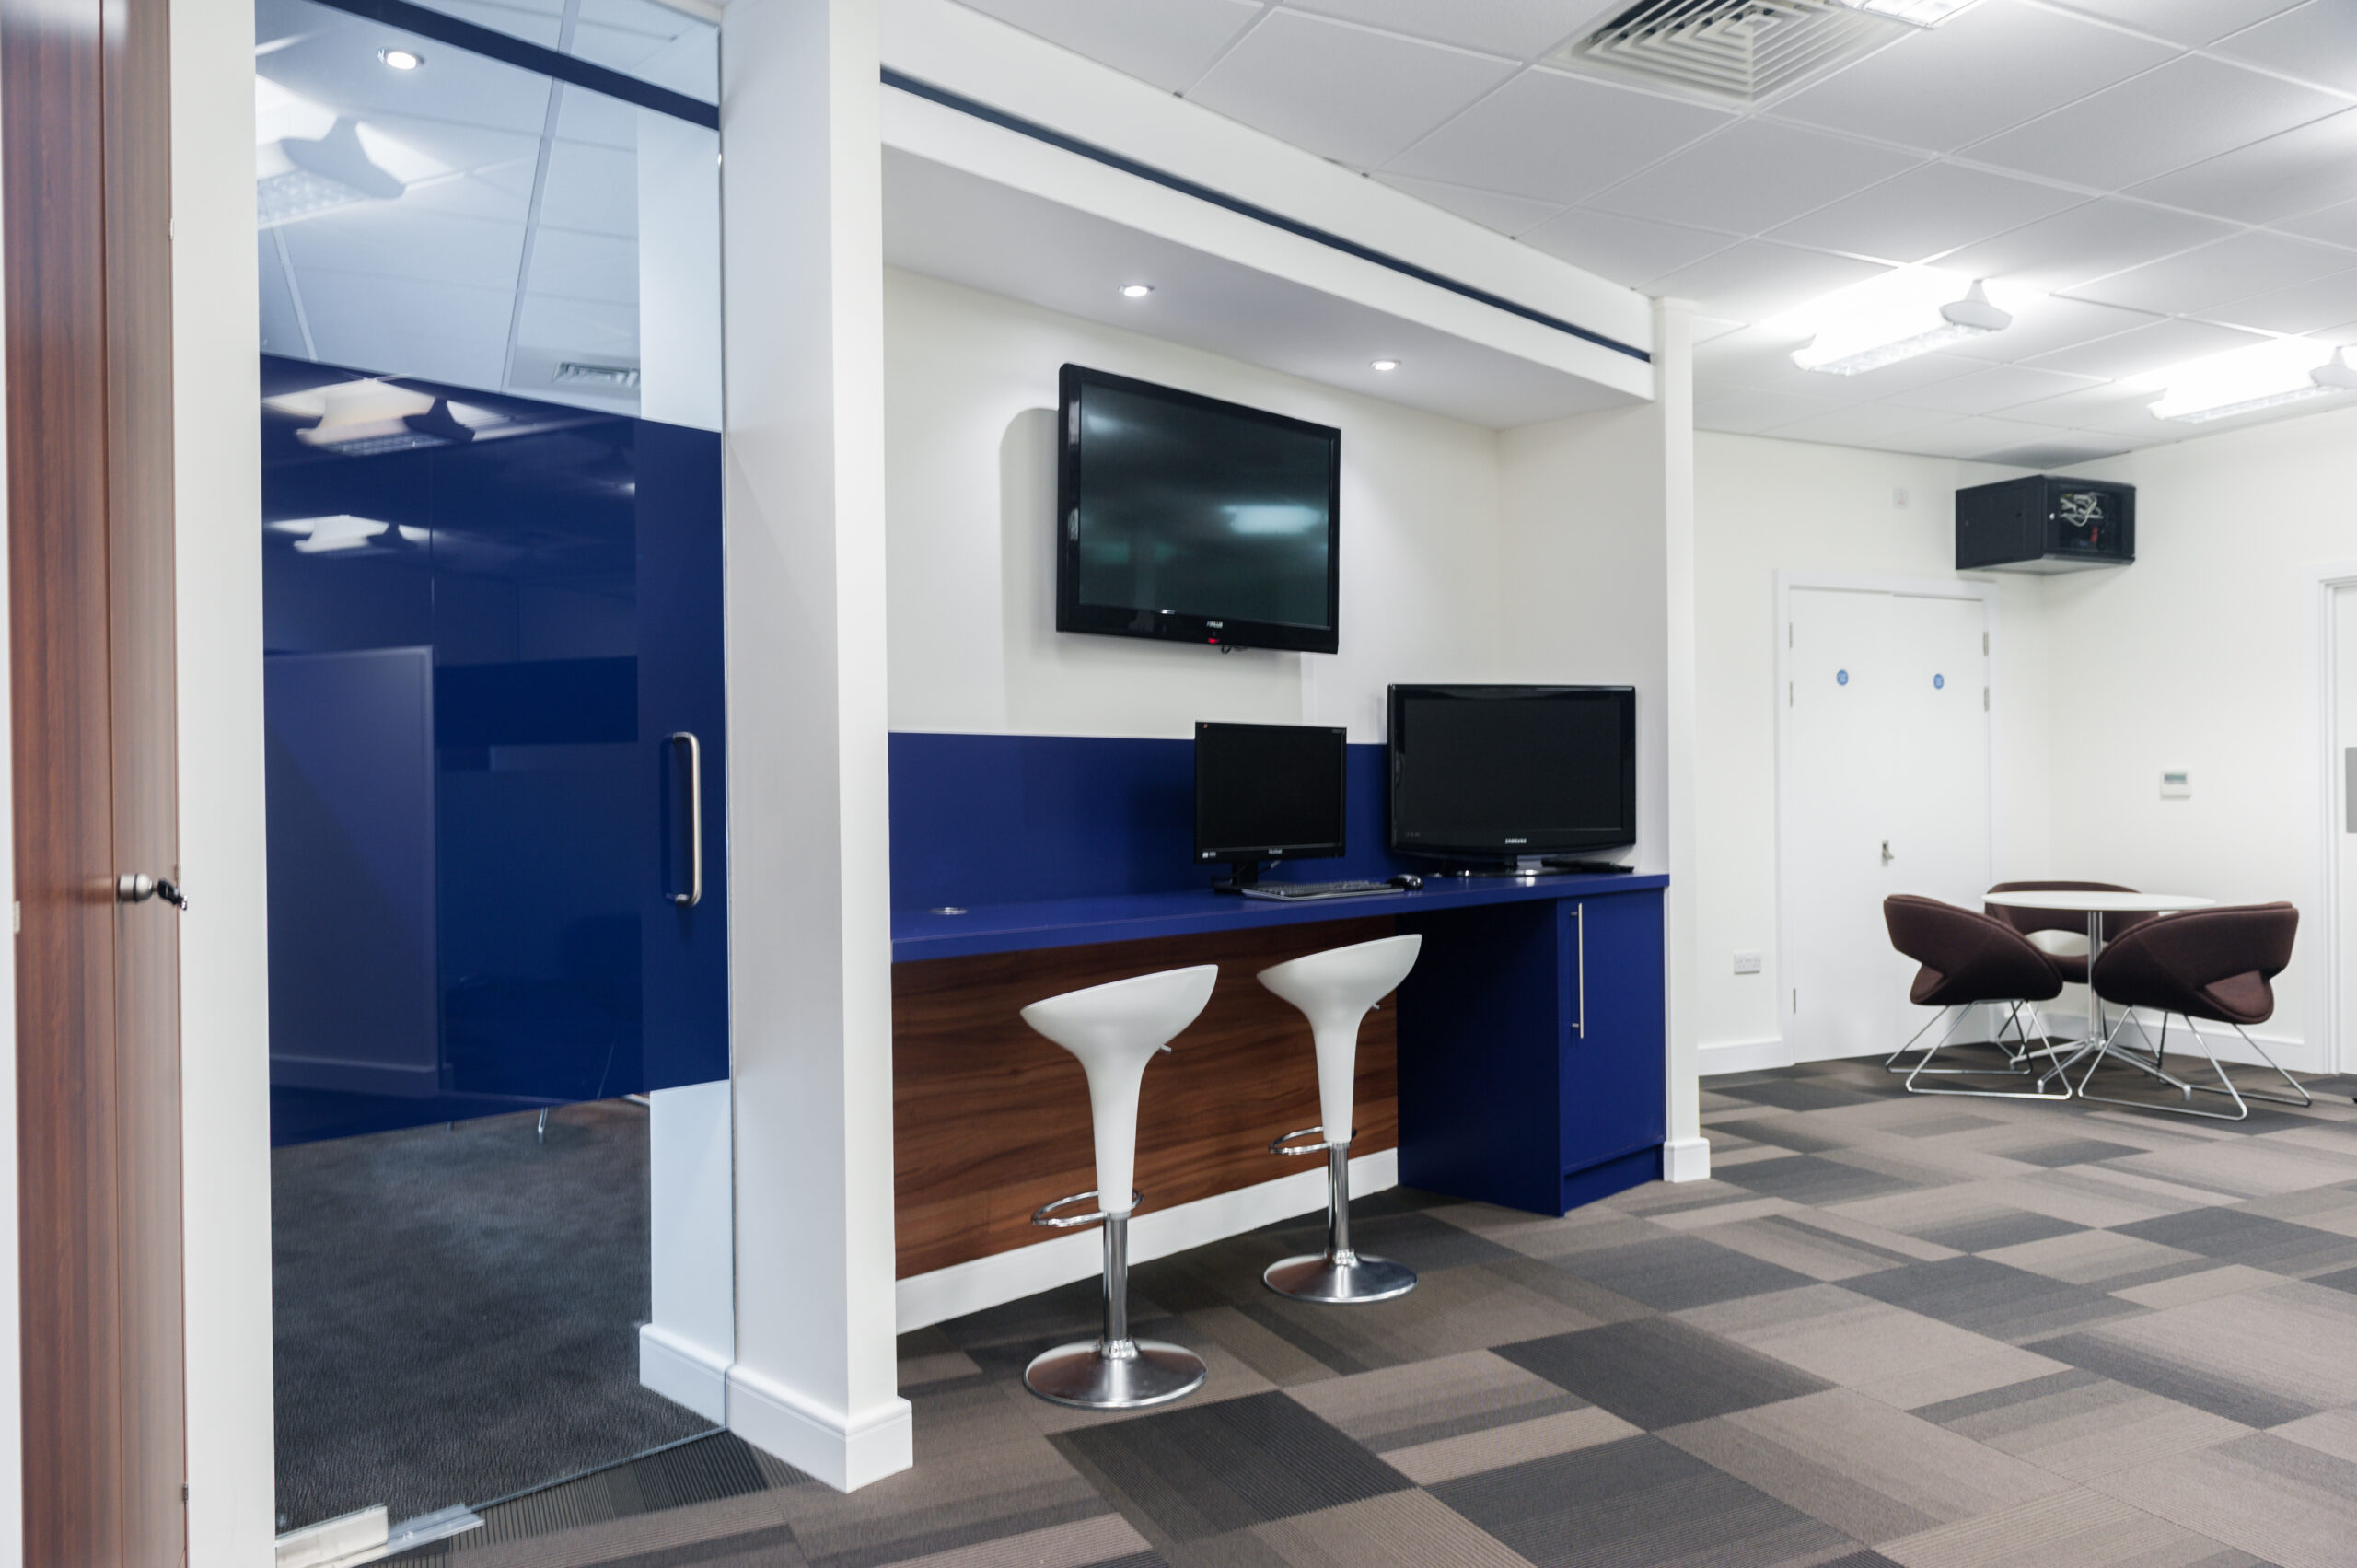 two white bar stools at blue work station with TV mounted on the wall. Carpet in square design